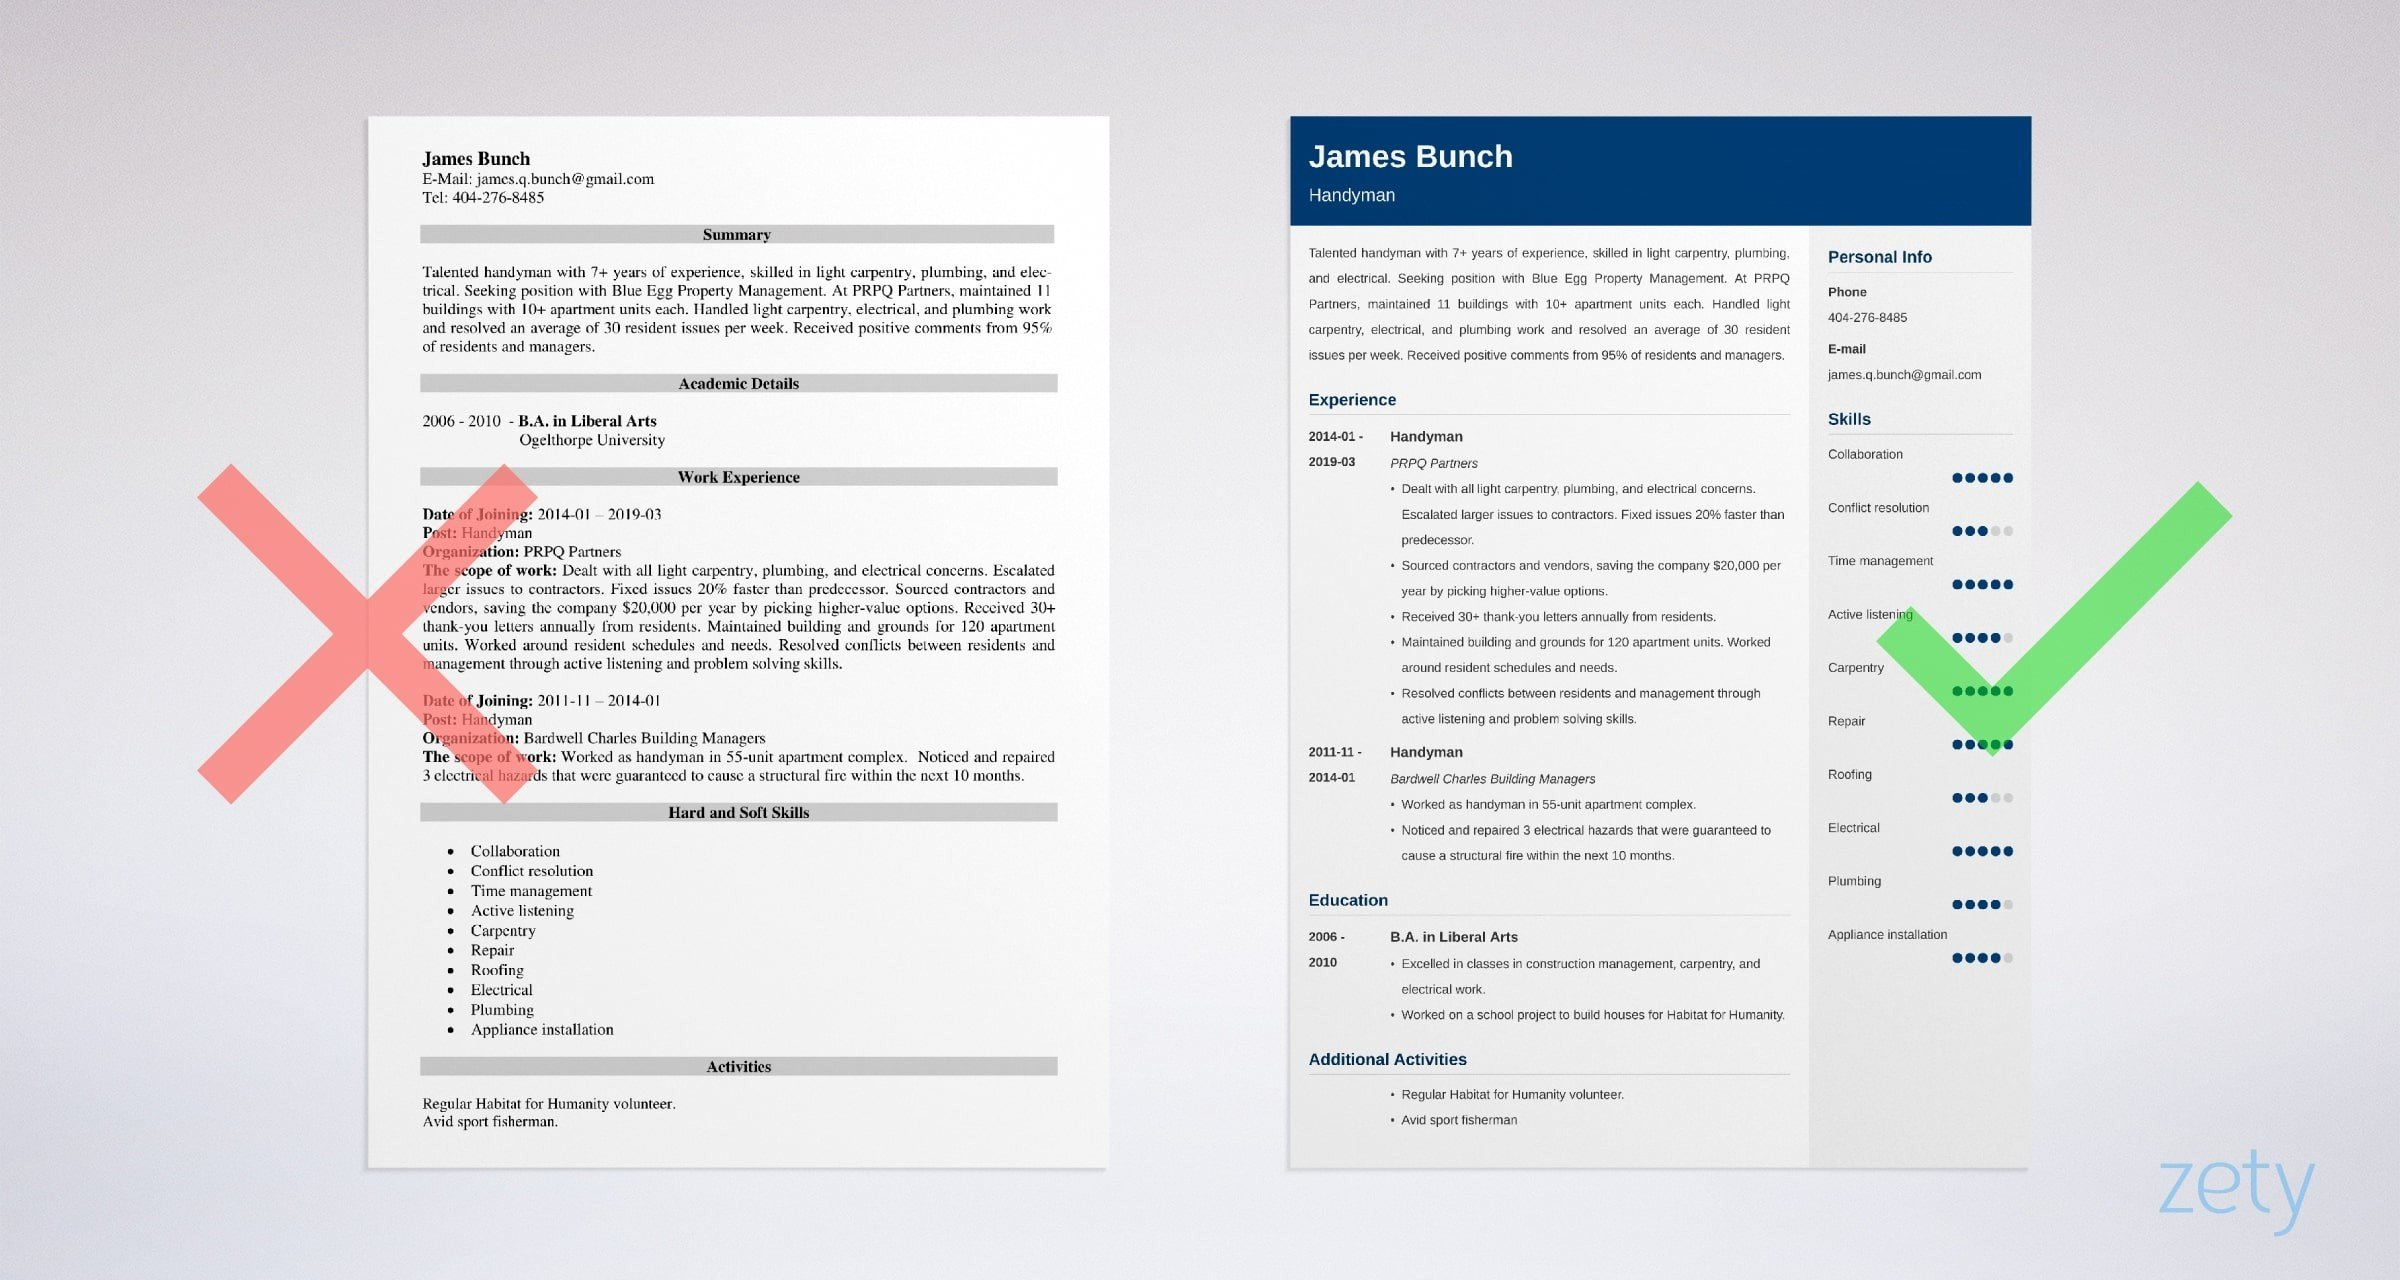 Handyman Resume  Sample and Complete Writing Guide  20 Tips